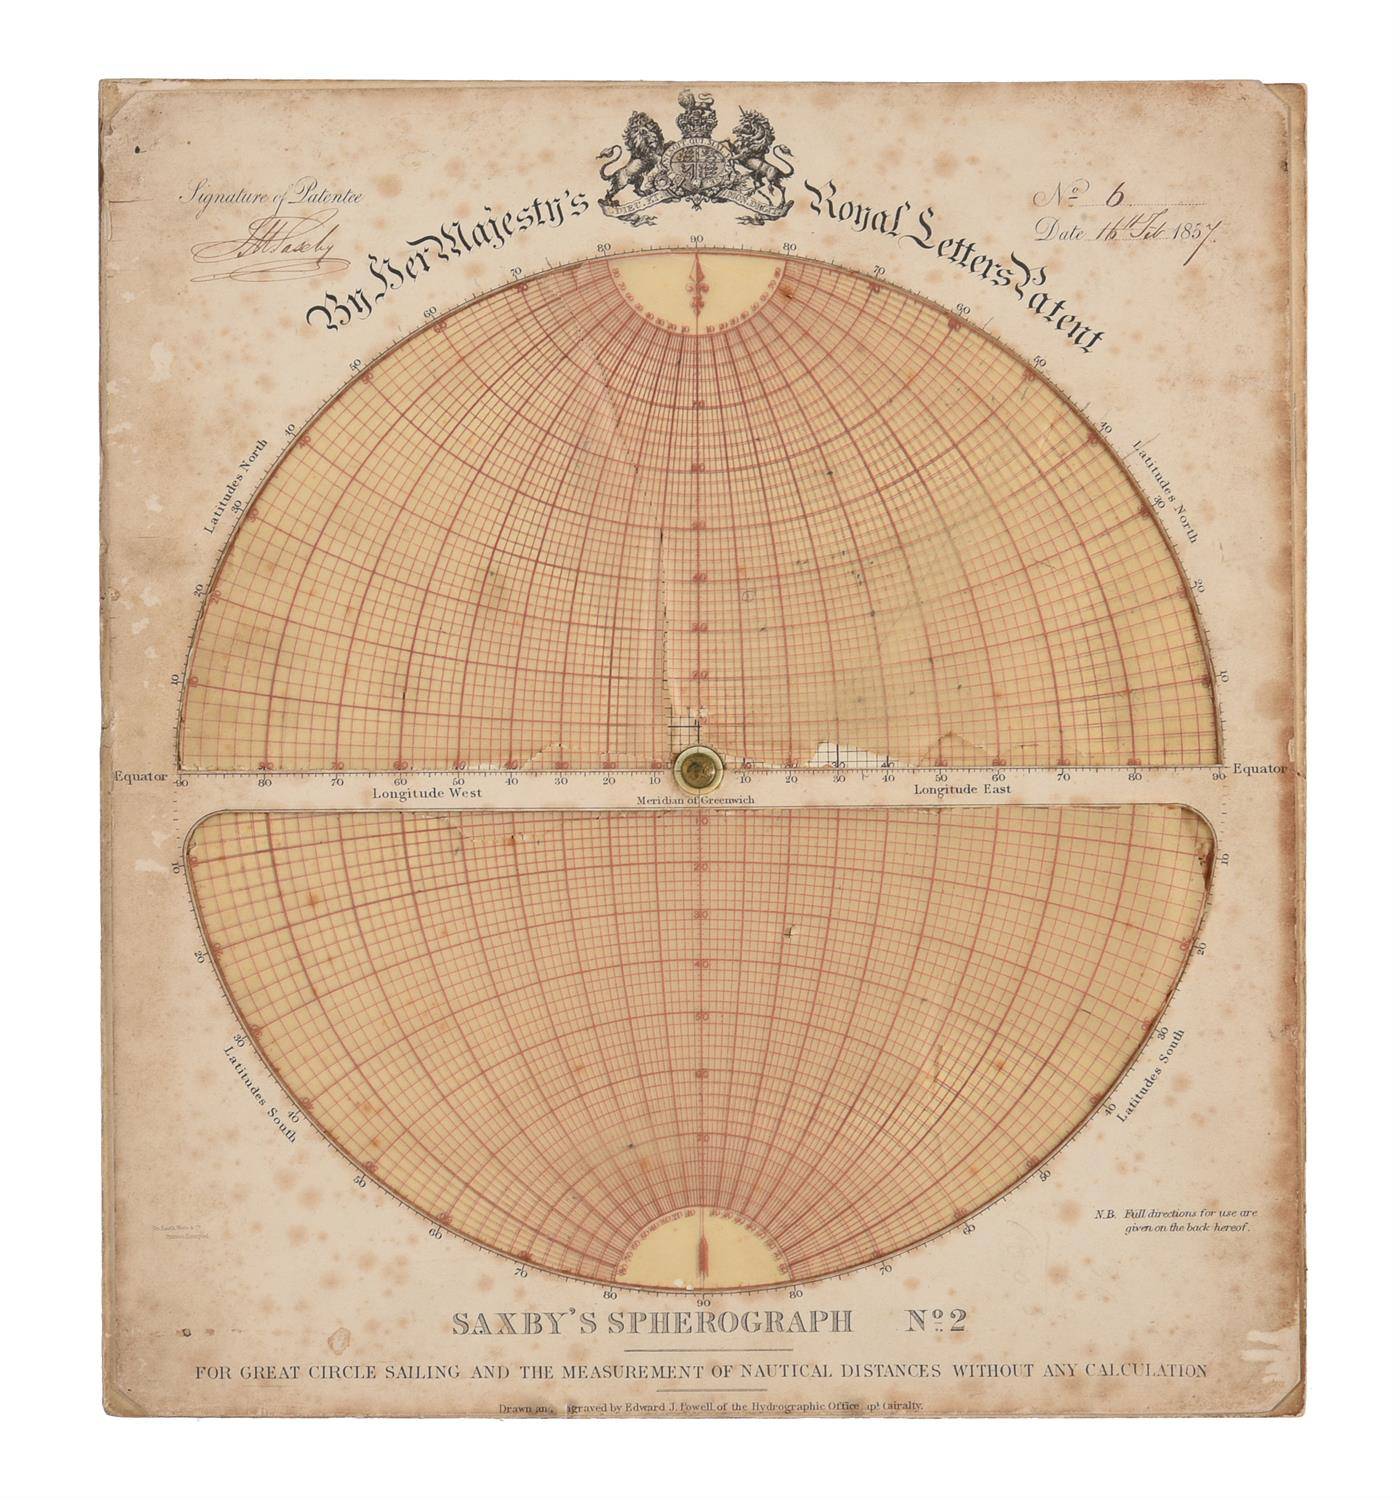 A rare group of 'Saxby's patent spherograph' marine navigational error calculator panels - Image 2 of 19